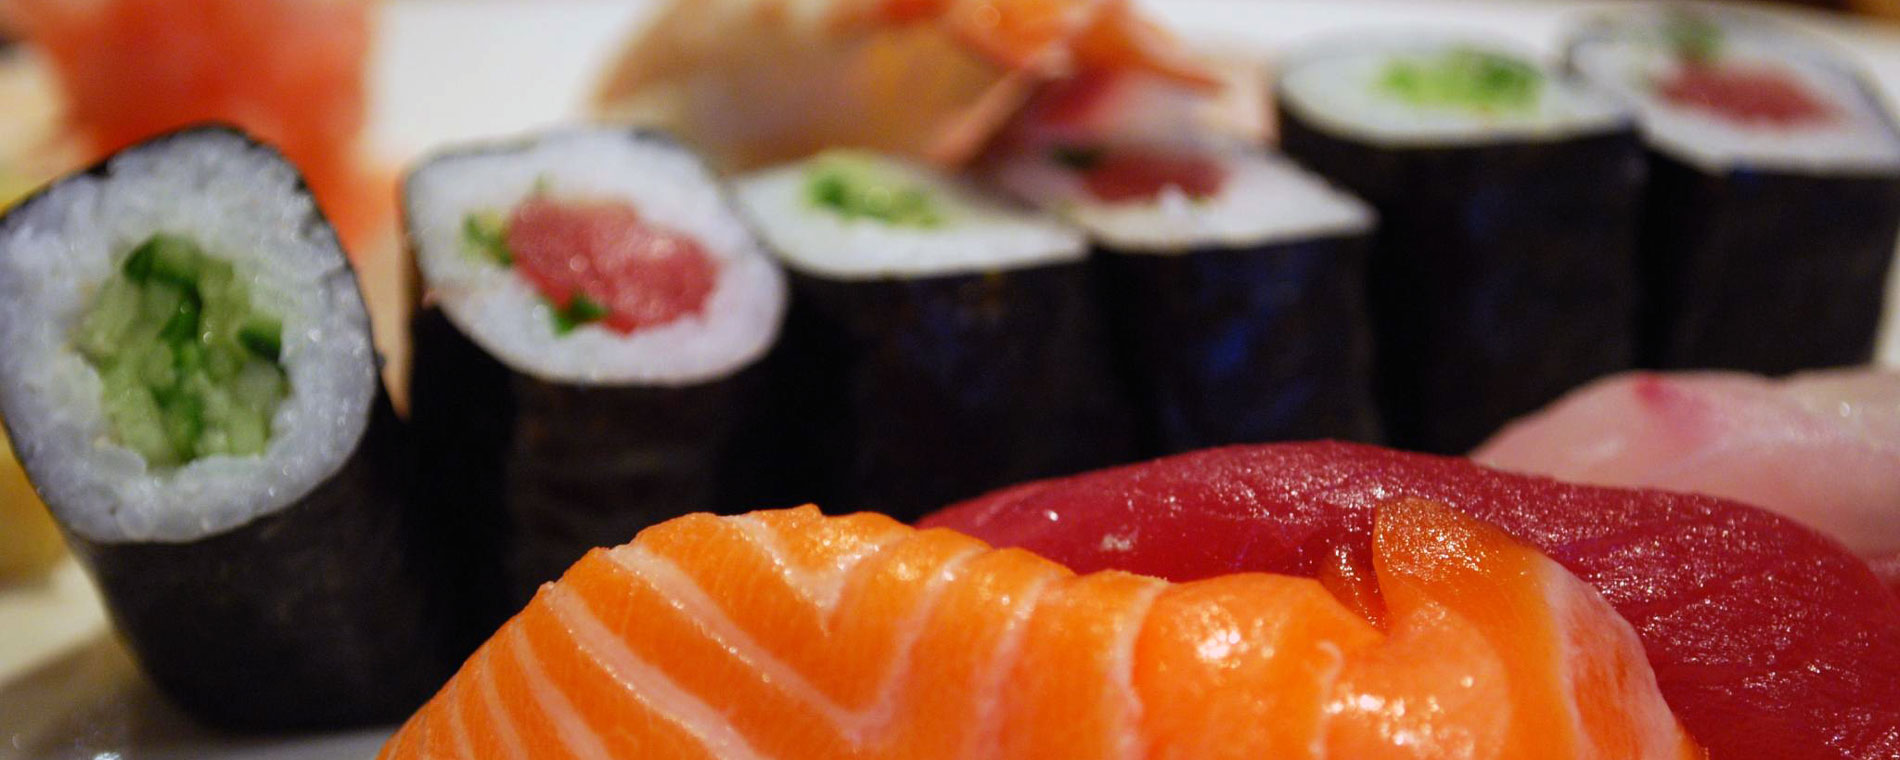 Sushi Could Be the Reason You Got Ghosted   MUNCHIES Munchies A new survey from dating website Match com has found that going for sushi on the first date increases the odds of seeing your potential bae again by